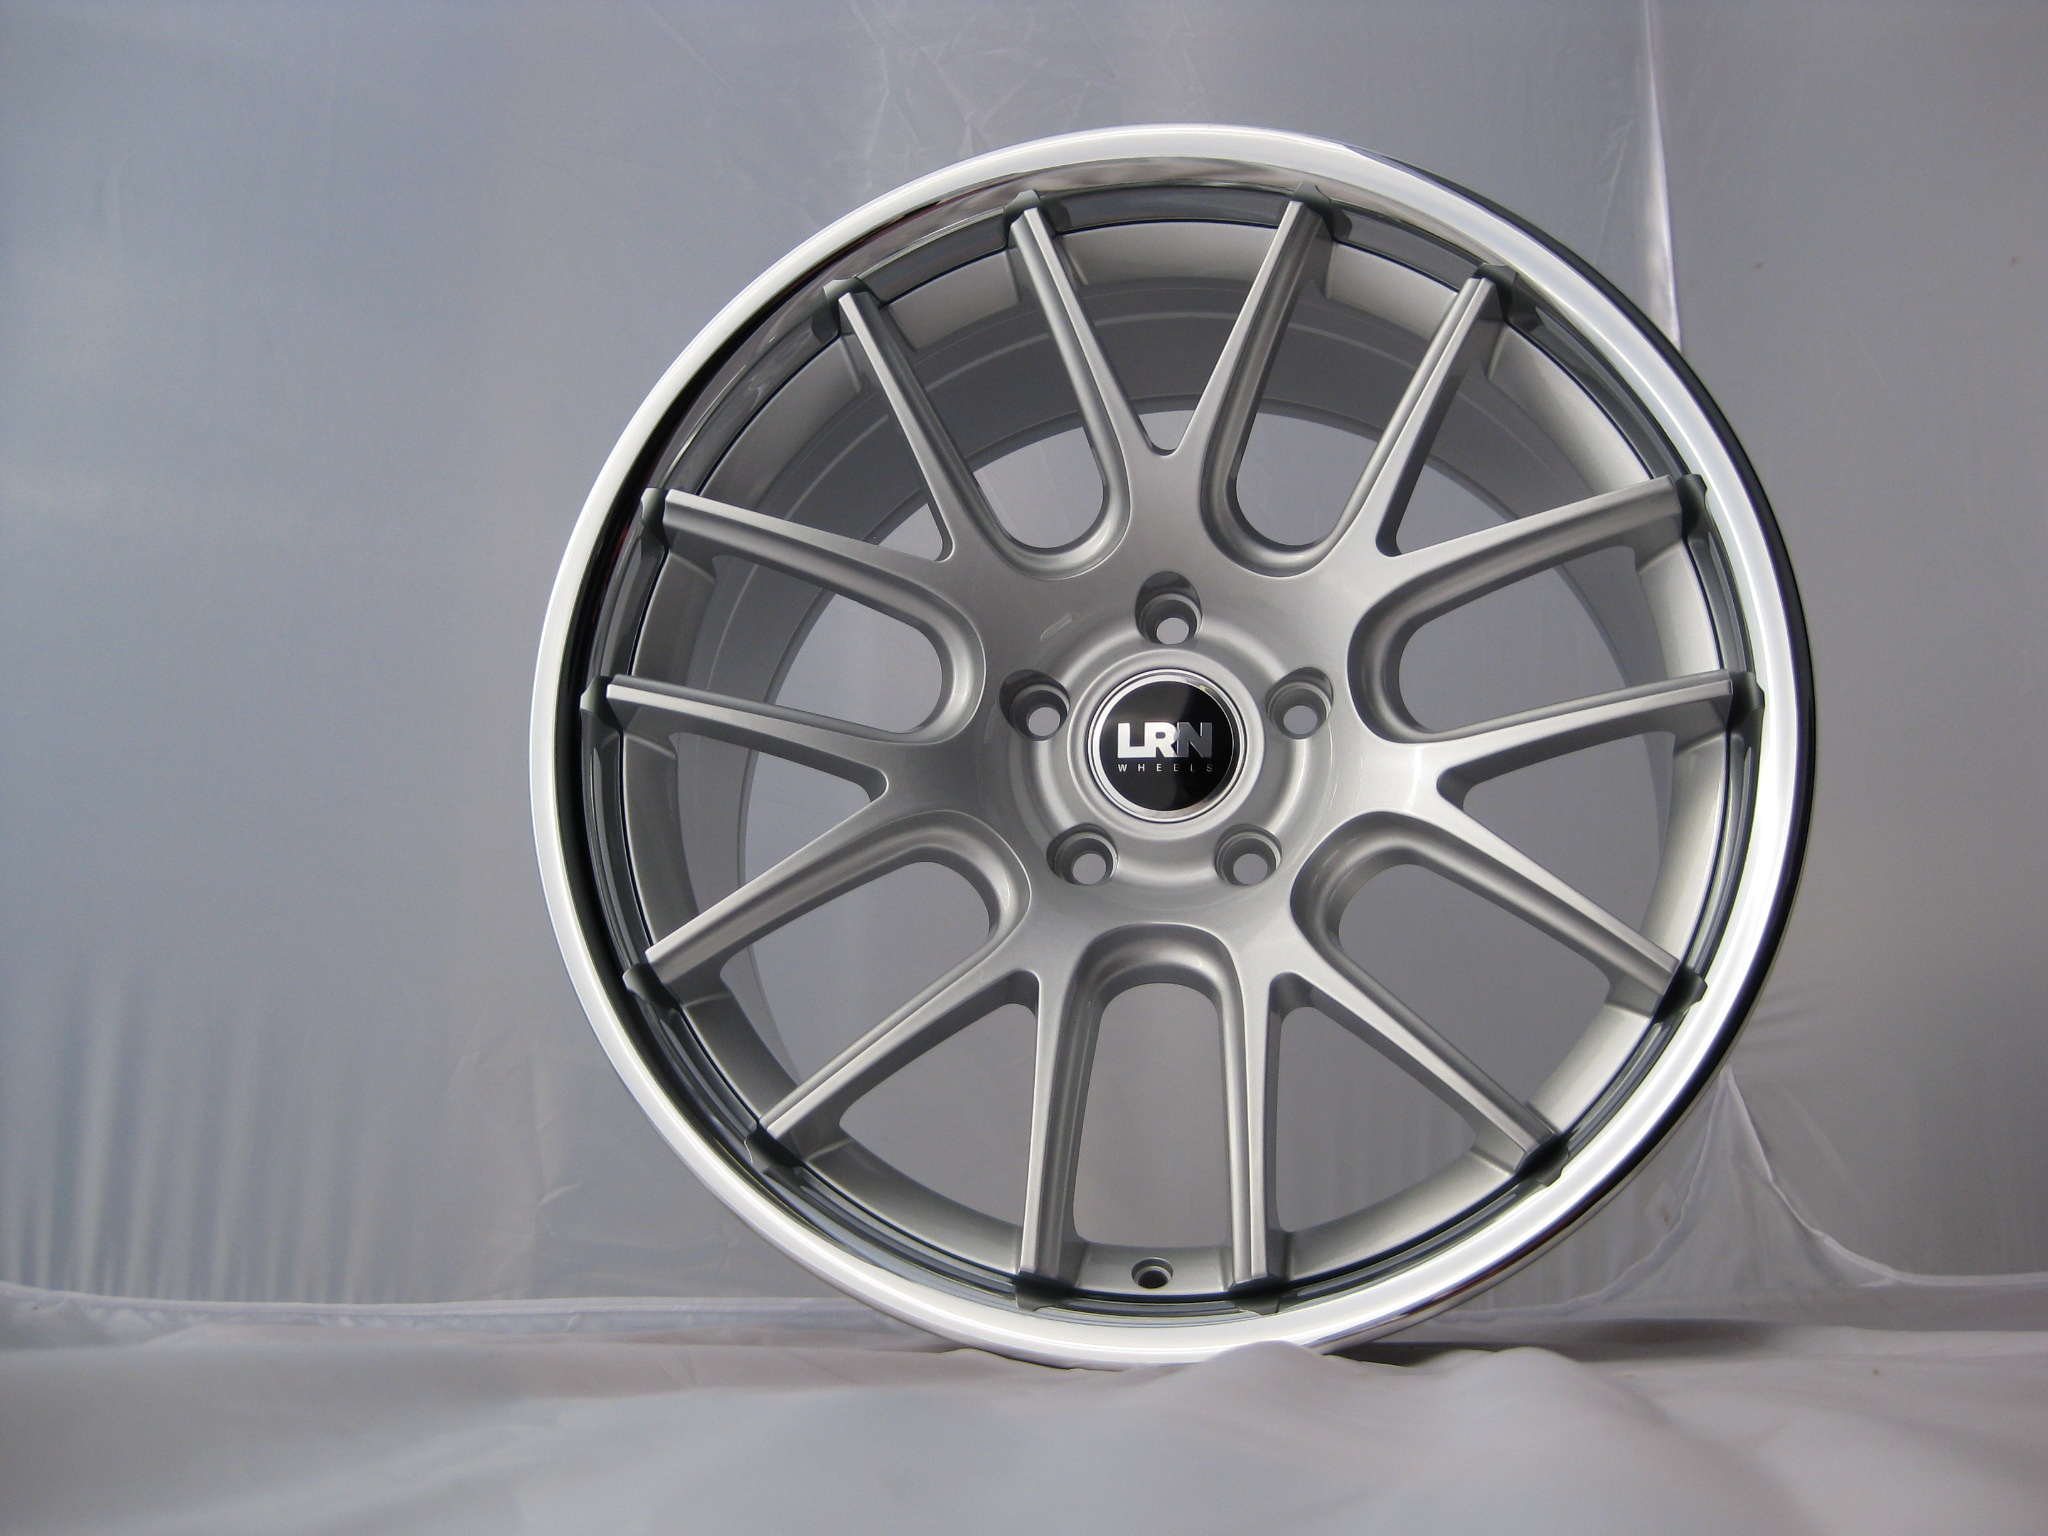 "NEW 19"" LRN VECTOR ALLOY WHEELS IN SILVER WITH INOX DISH, MASSIVE 10"" WIDE REAR'S WITH DEEP CONCAVE"